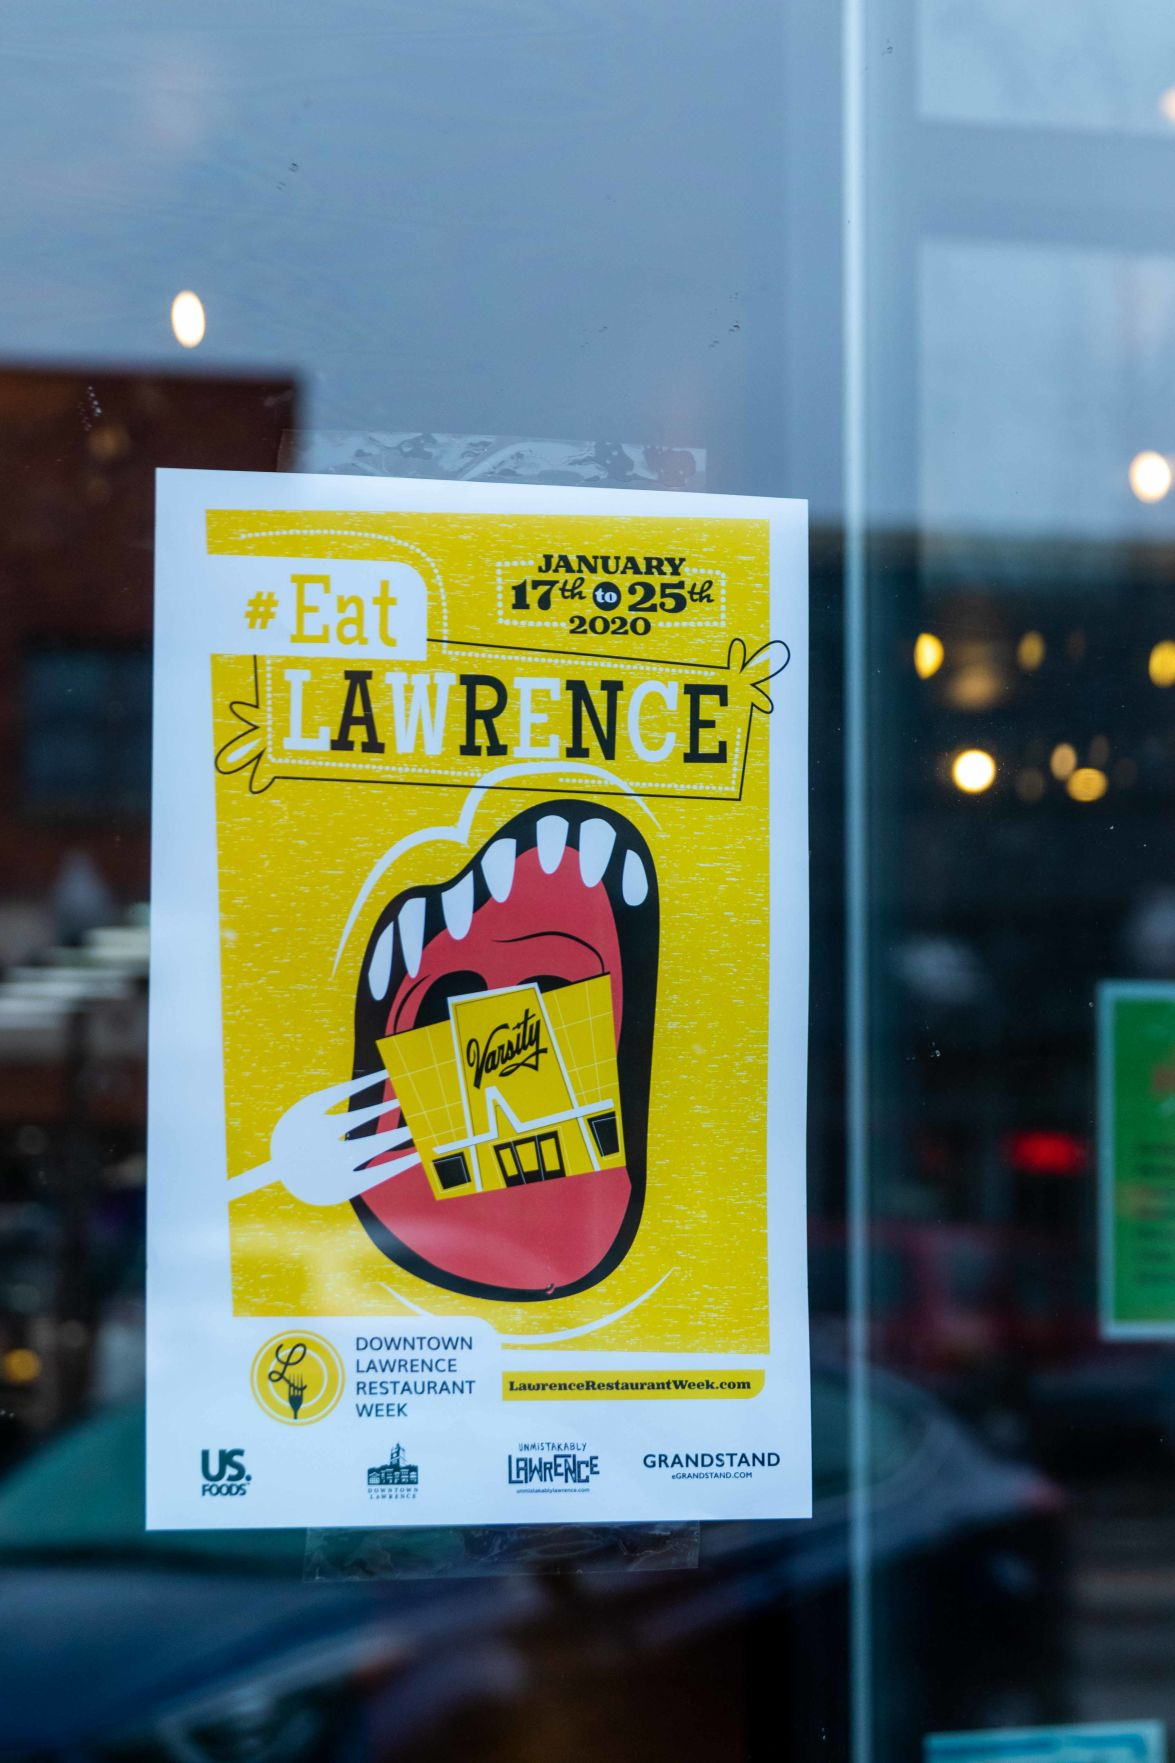 A sign advertises Downtown Lawrence Restaurant week for Jan. 17 to 25